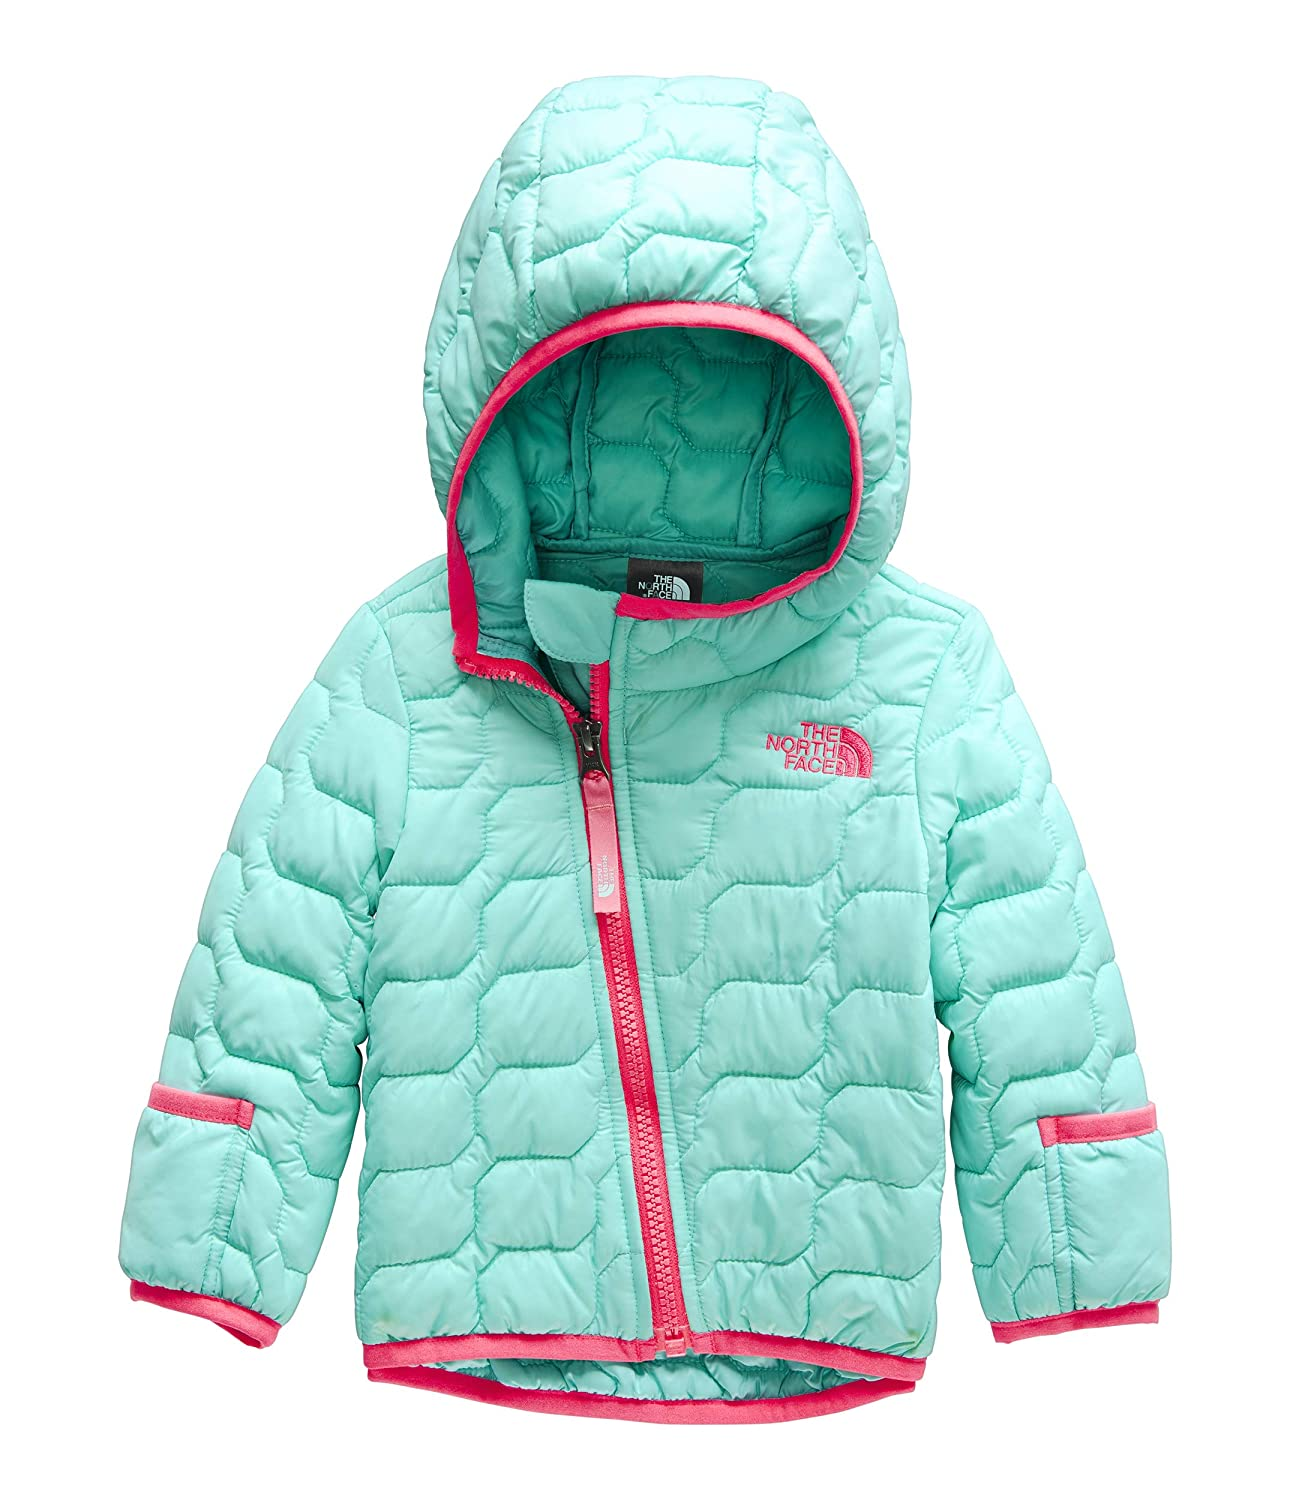 d7c095970cc0 Amazon.com  The North Face Infant Thermoball Hoodie  Clothing